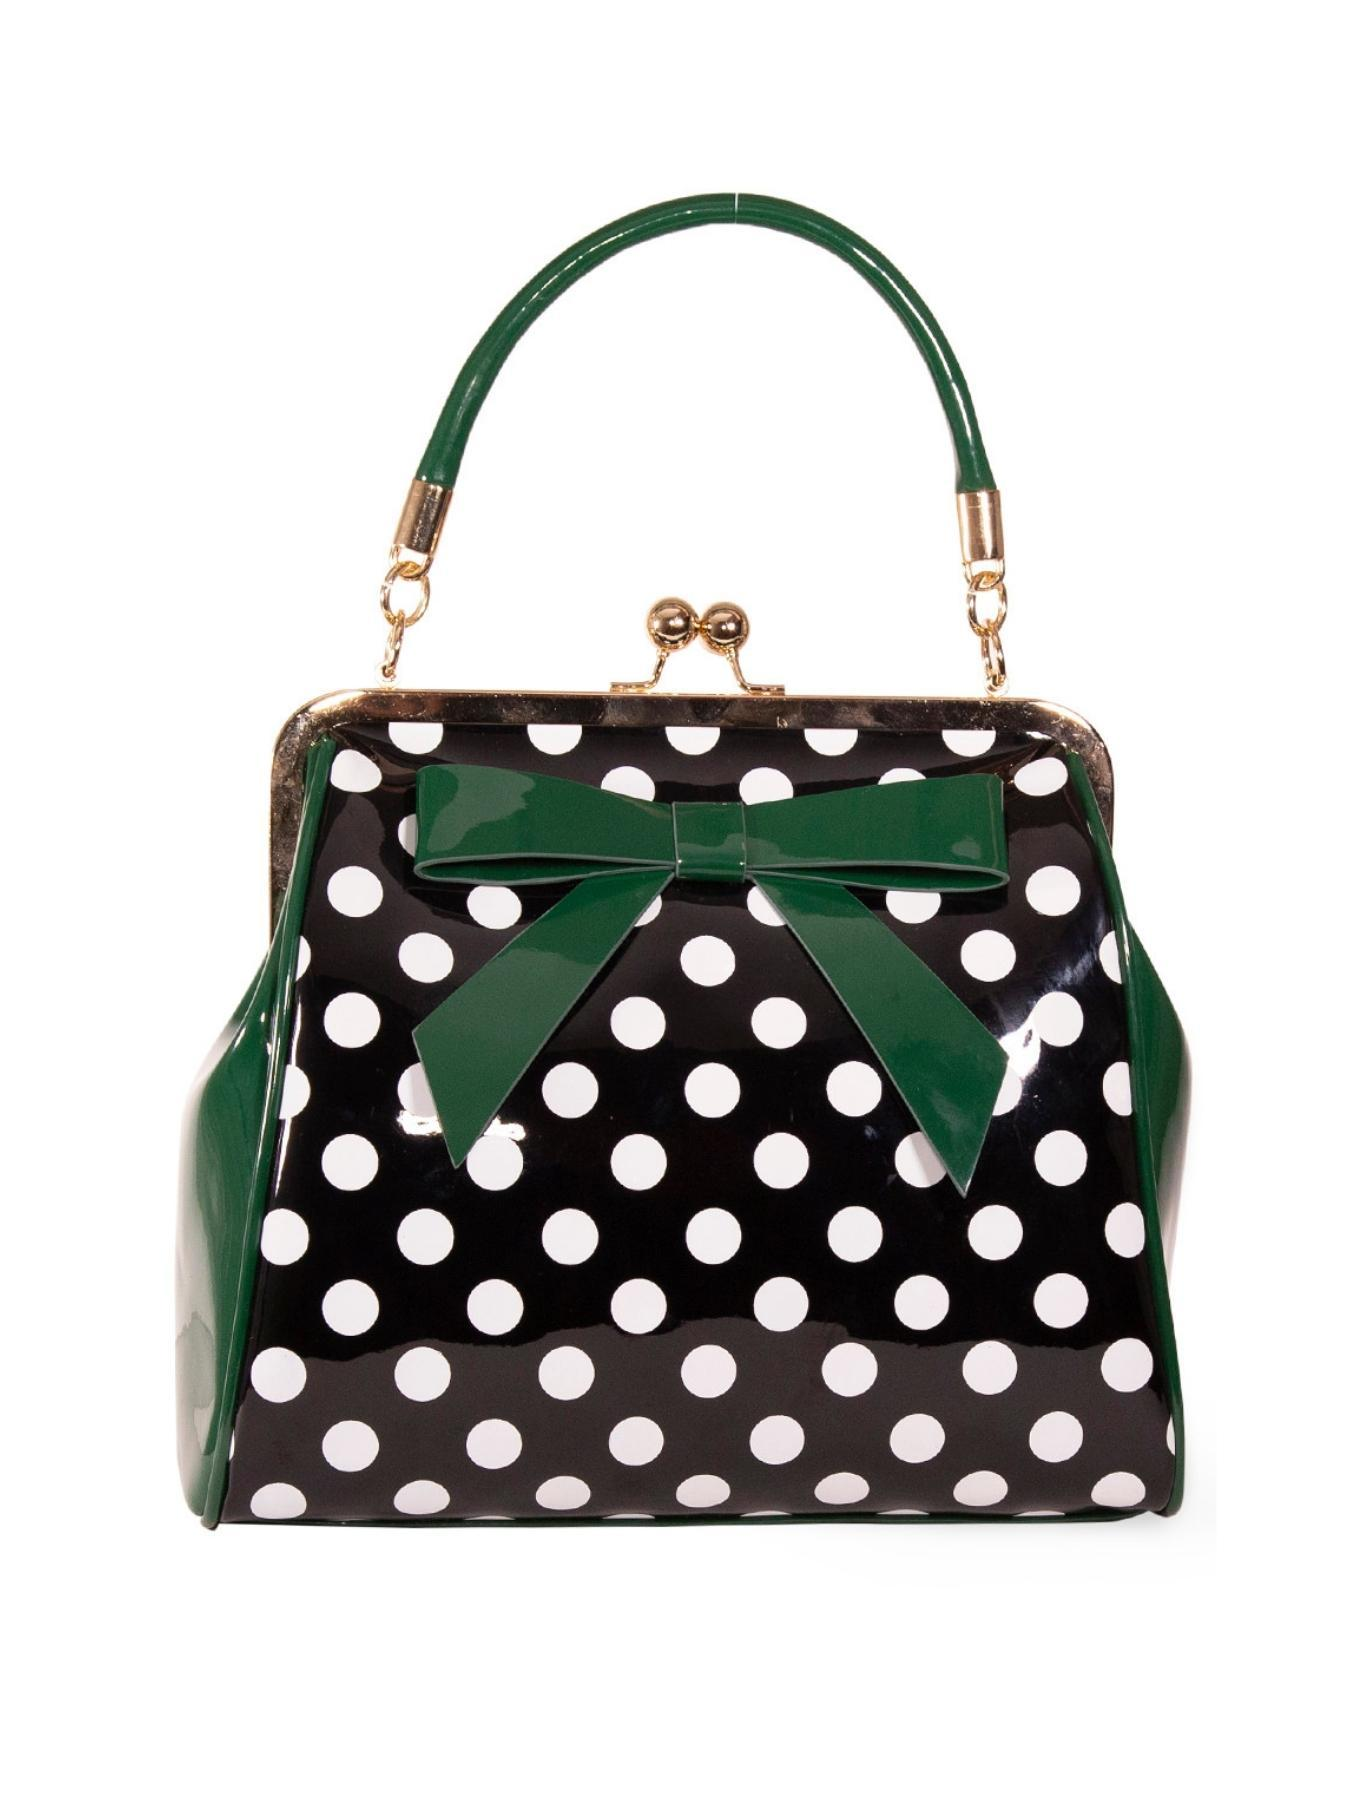 Dancing Days American Polka Dot Bag - Bohemian Finds